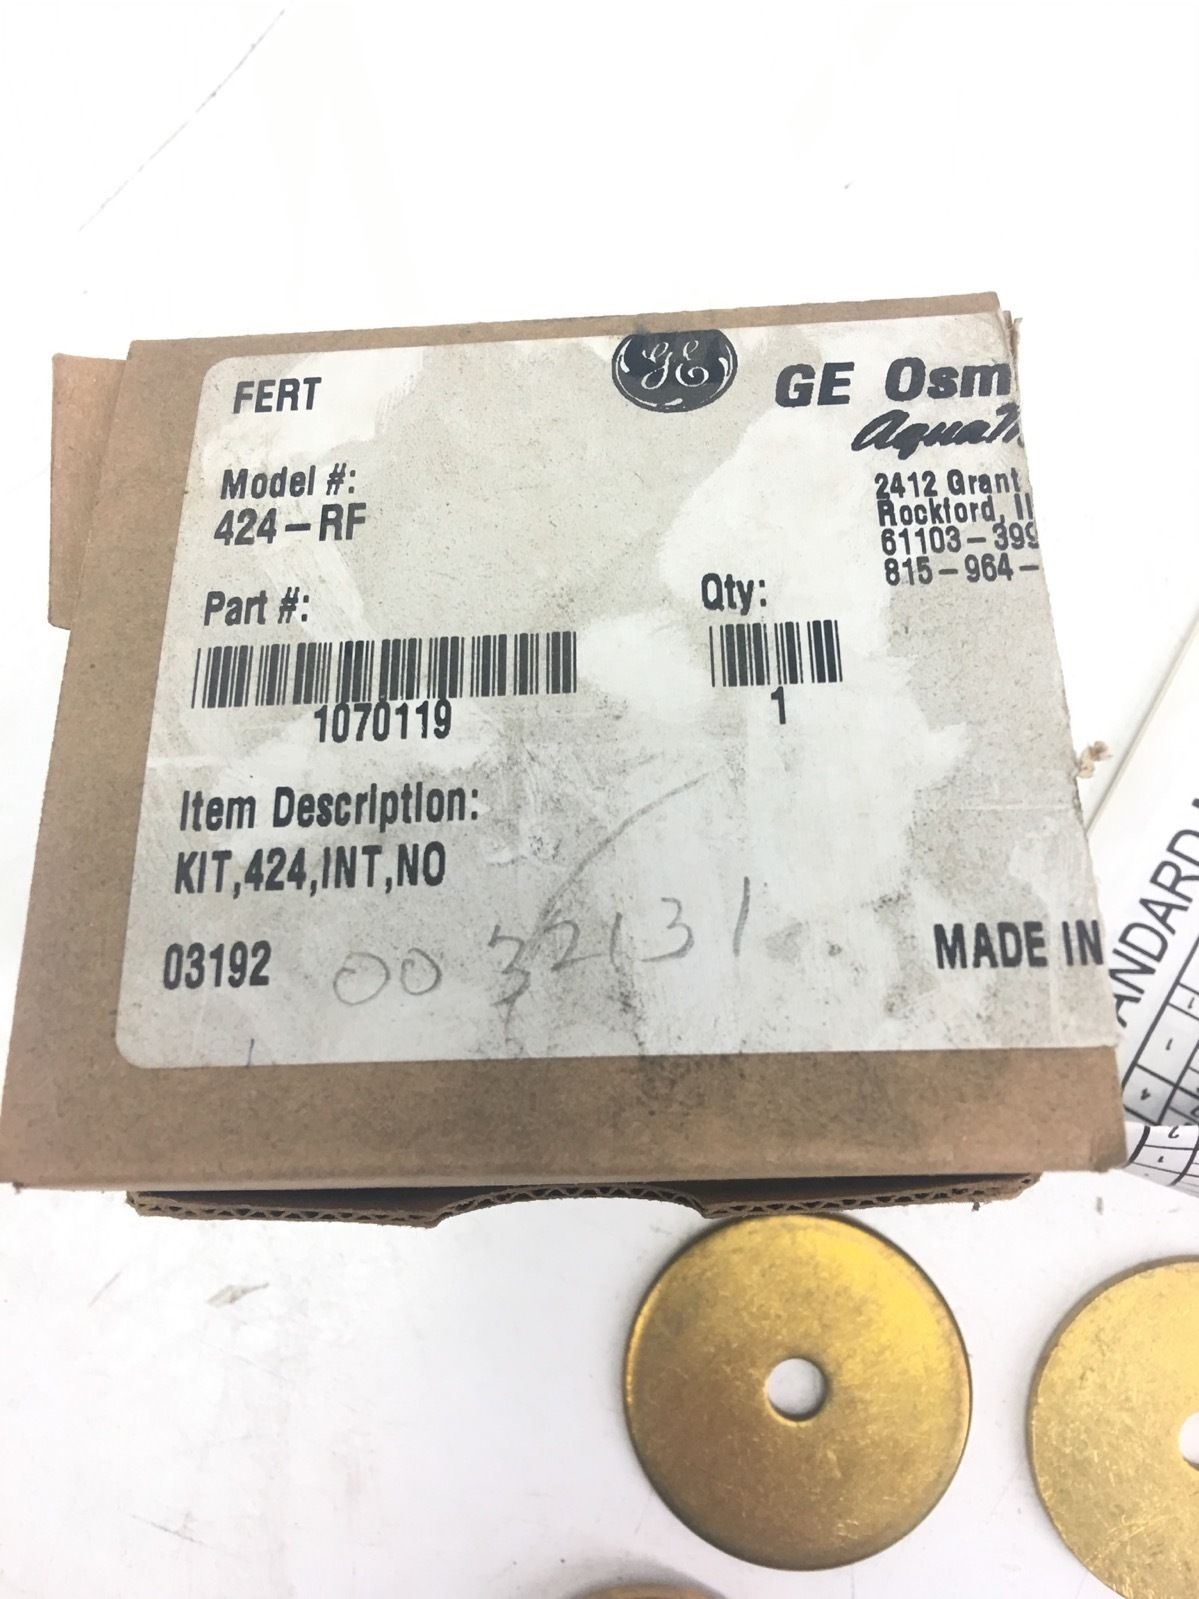 NEW IN BOX Aquamatic  424-RF  INTERNAL PARTS KIT, NORMALLY OPEN VALVES, F230 2